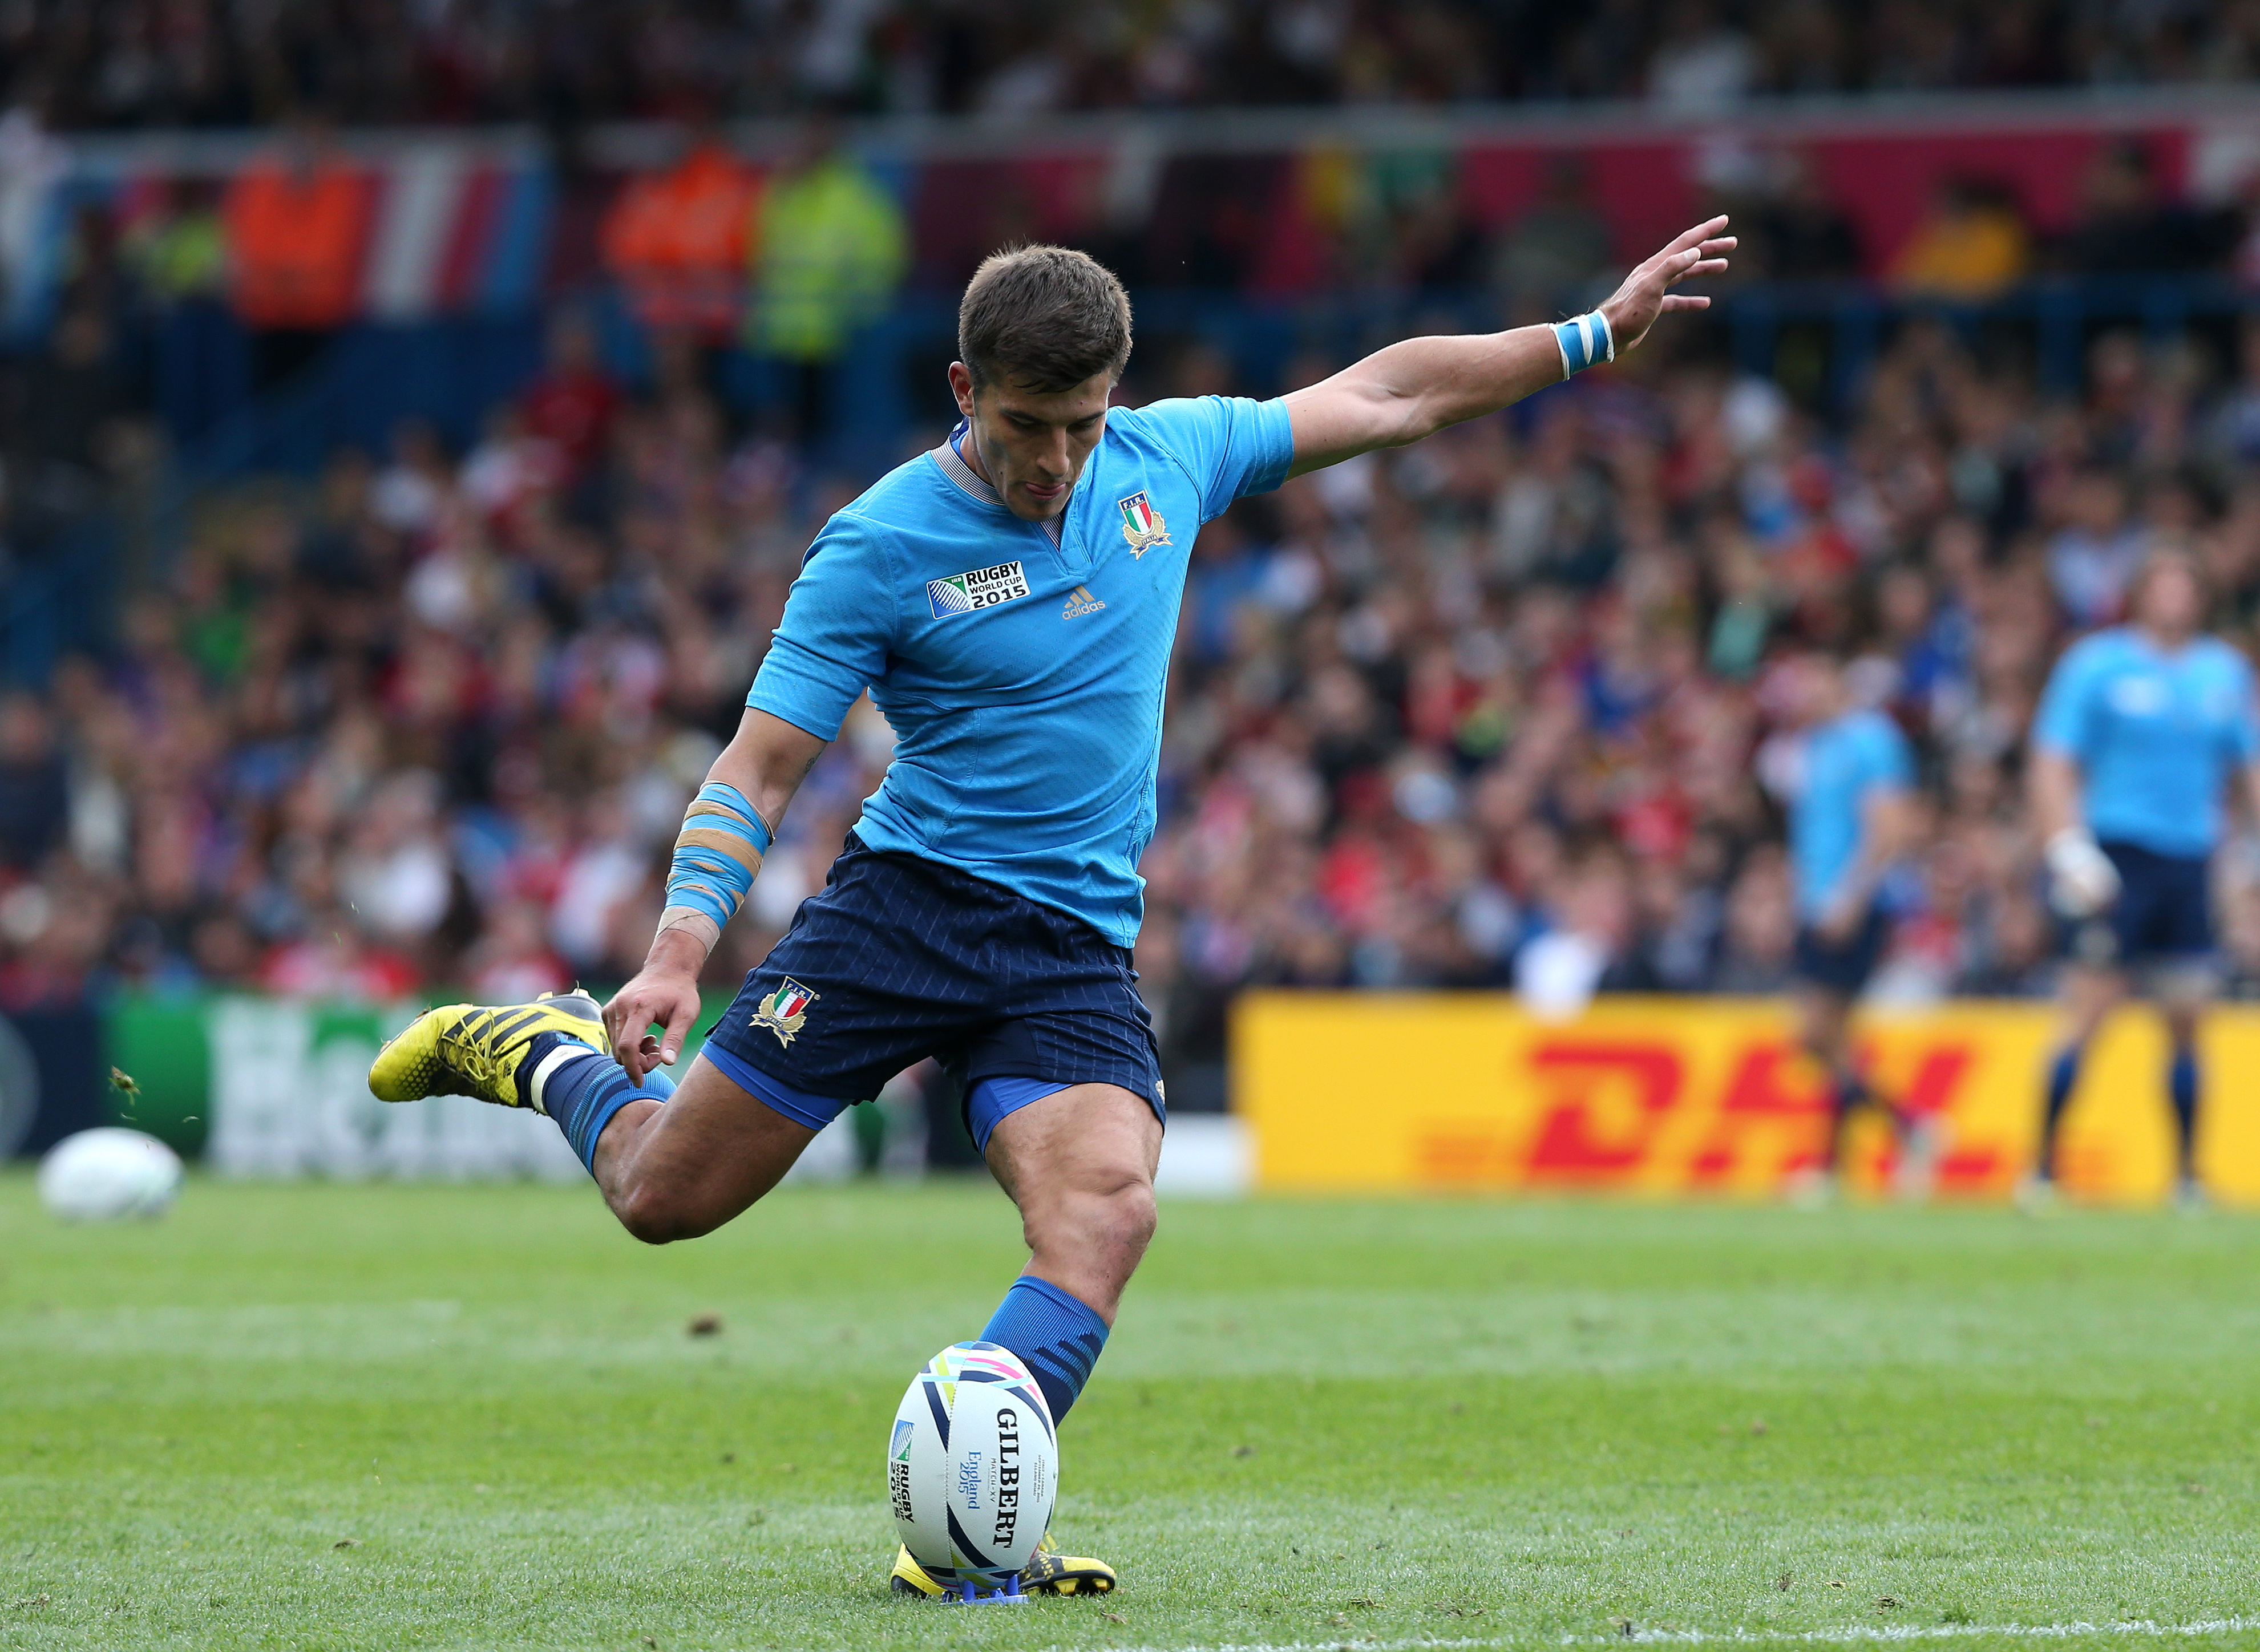 LEEDS, ENGLAND - SEPTEMBER 26 : Tommaso Allen of Italy takes a conversion in the second half during the 2015 Rugby World Cup Pool D match between Italy and Canada at Elland Road on September 26, 2015 in Leeds England. (Photo by Mark Runnacles/Getty Images)